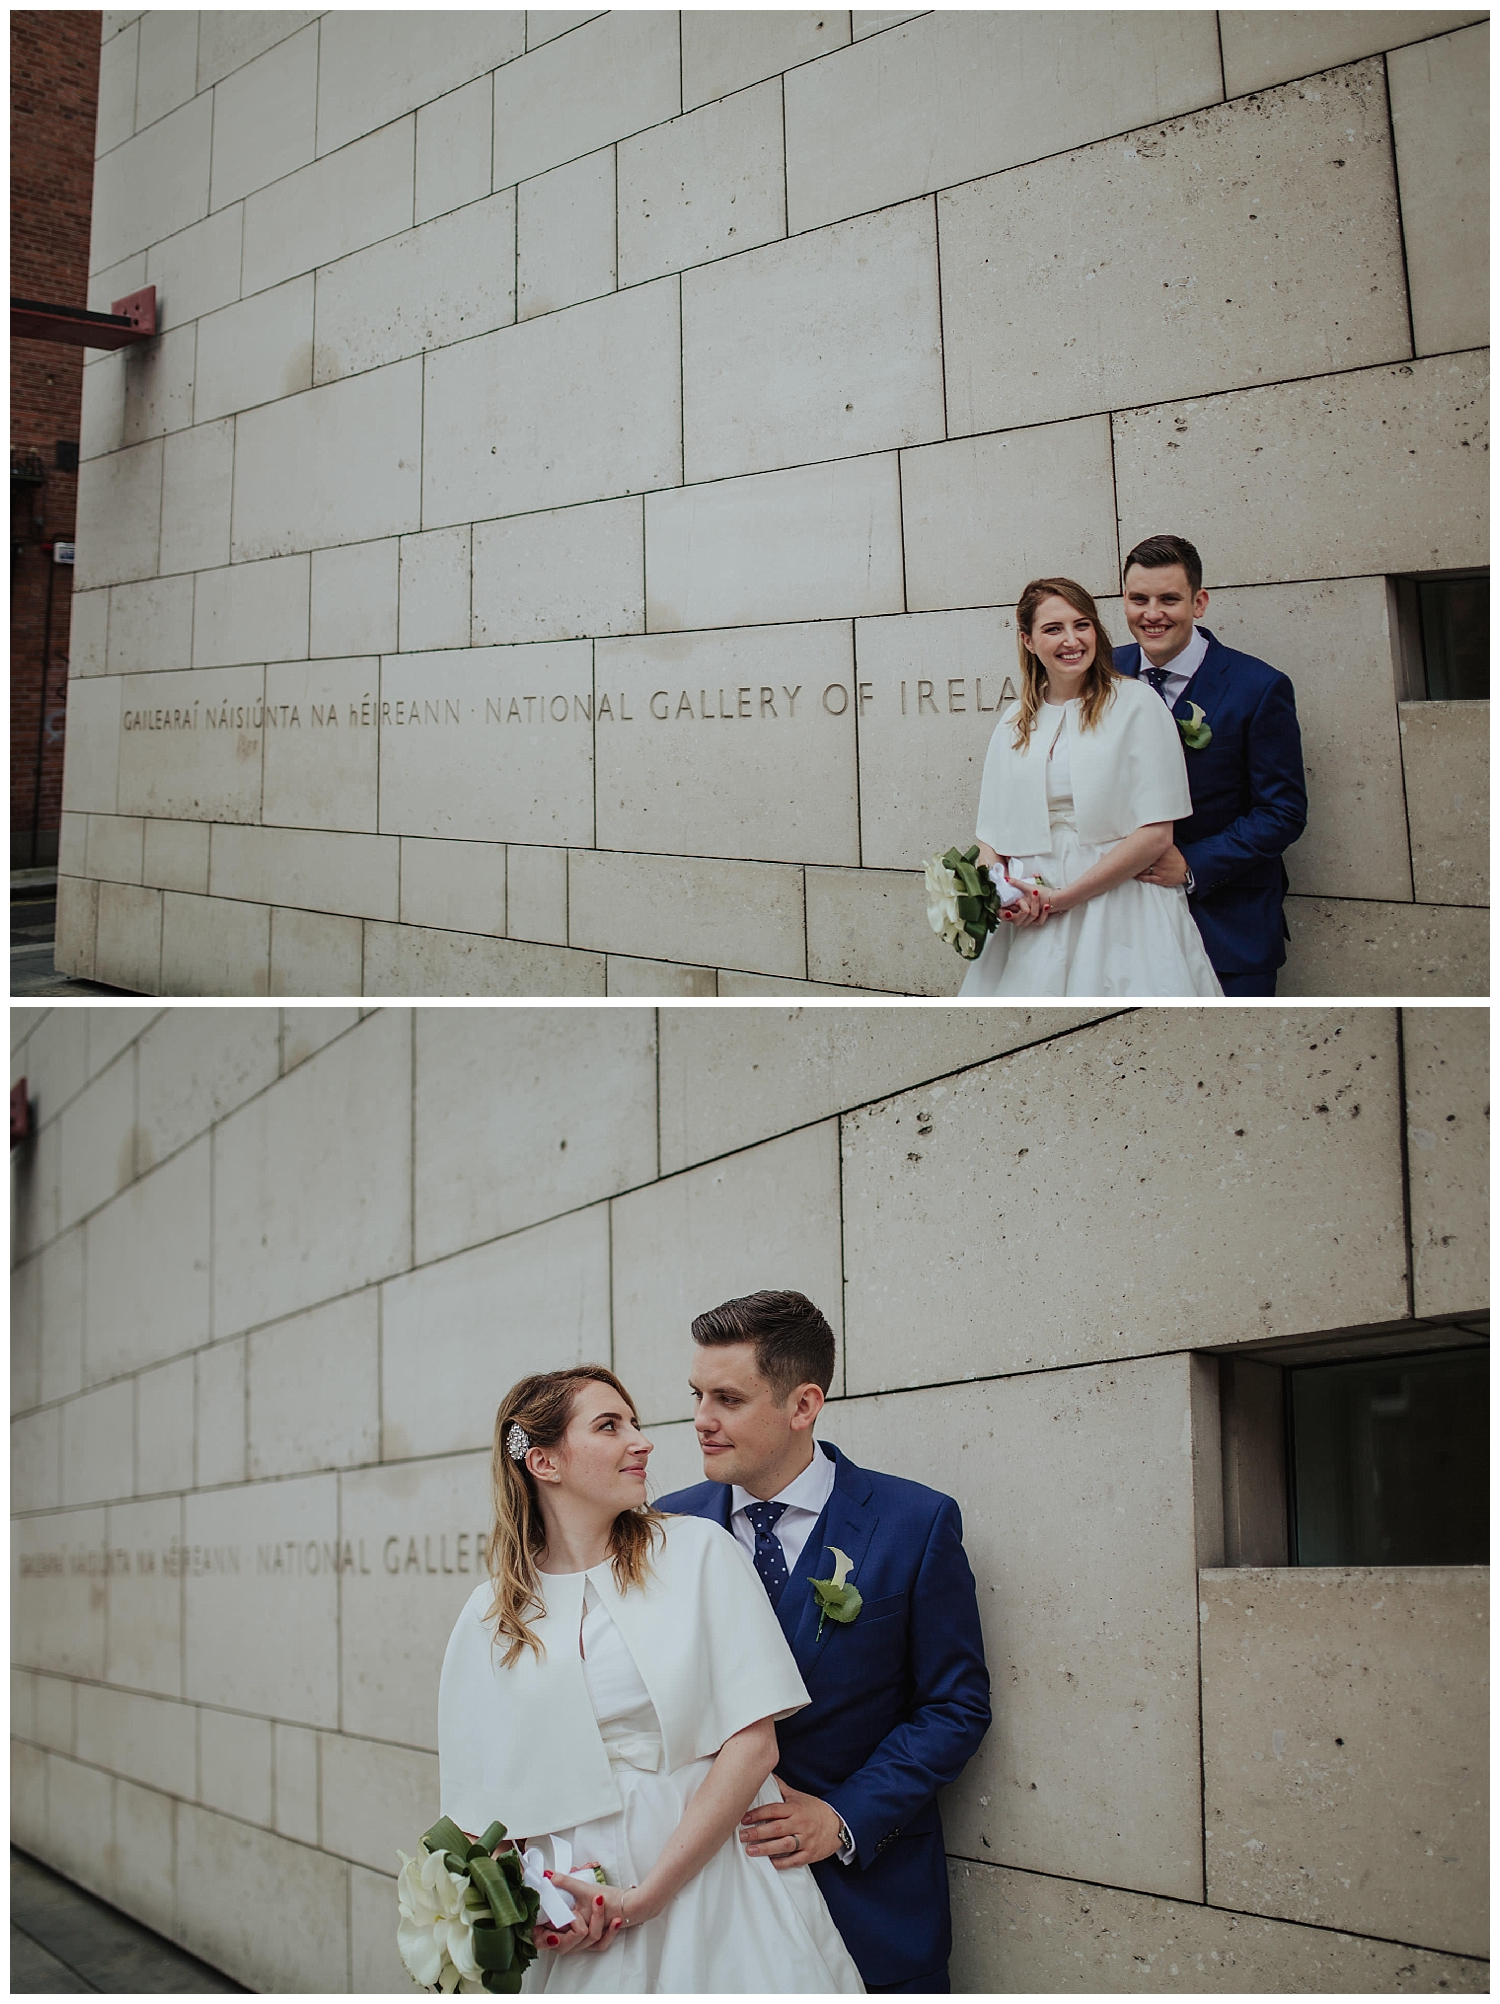 e&a_dublin_city_wedding_livia_figueiredo_576.jpg